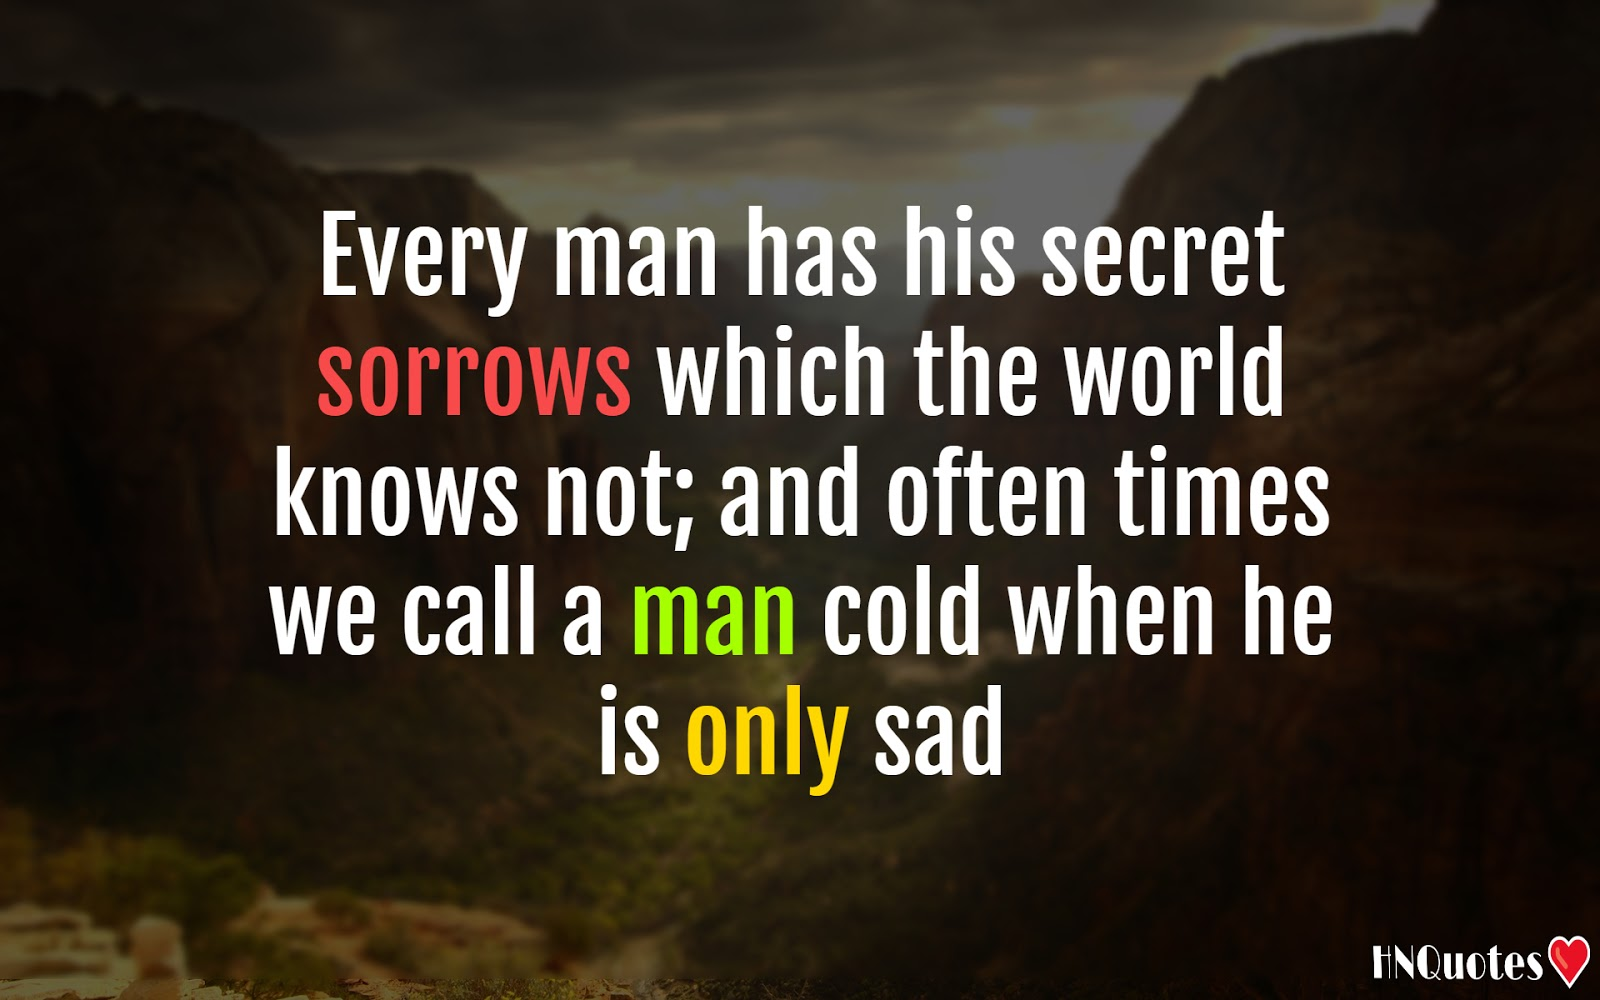 Sad-&-Emotional-Quotes-on-Life-78-Best-Emotional-Quotes[HNQuotes]